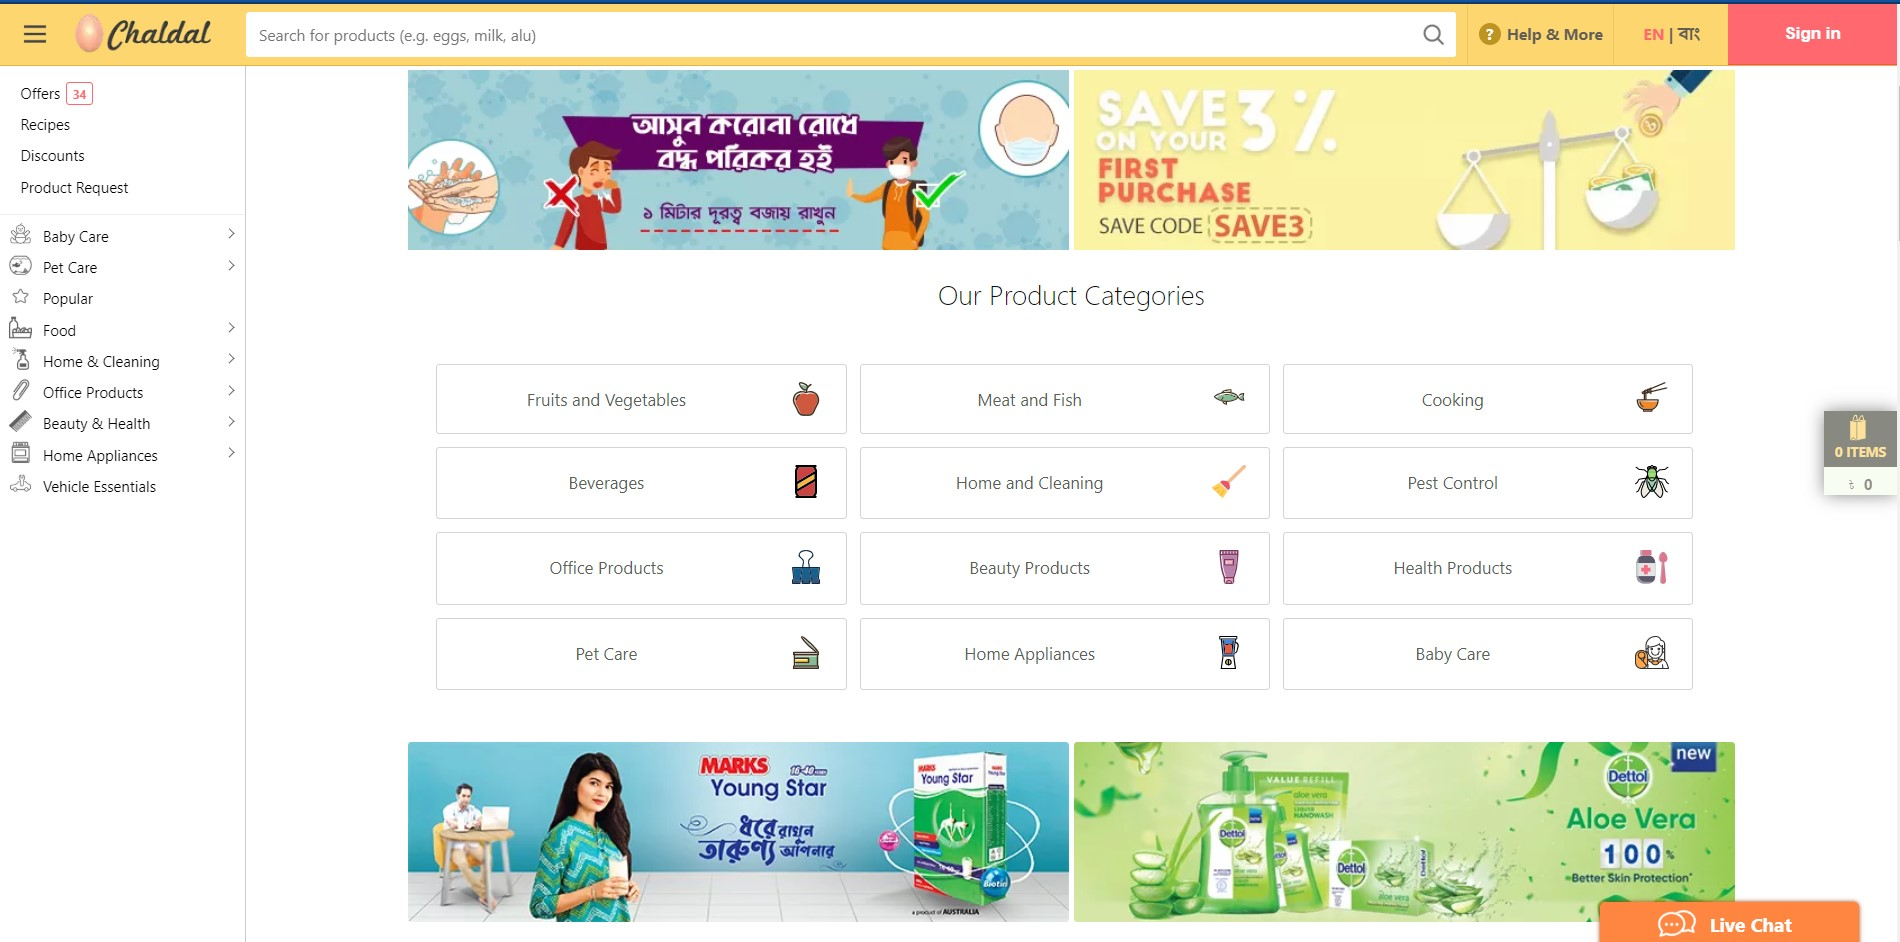 Chaldal.com - Best Grocery ecommerce site in Bangladesh